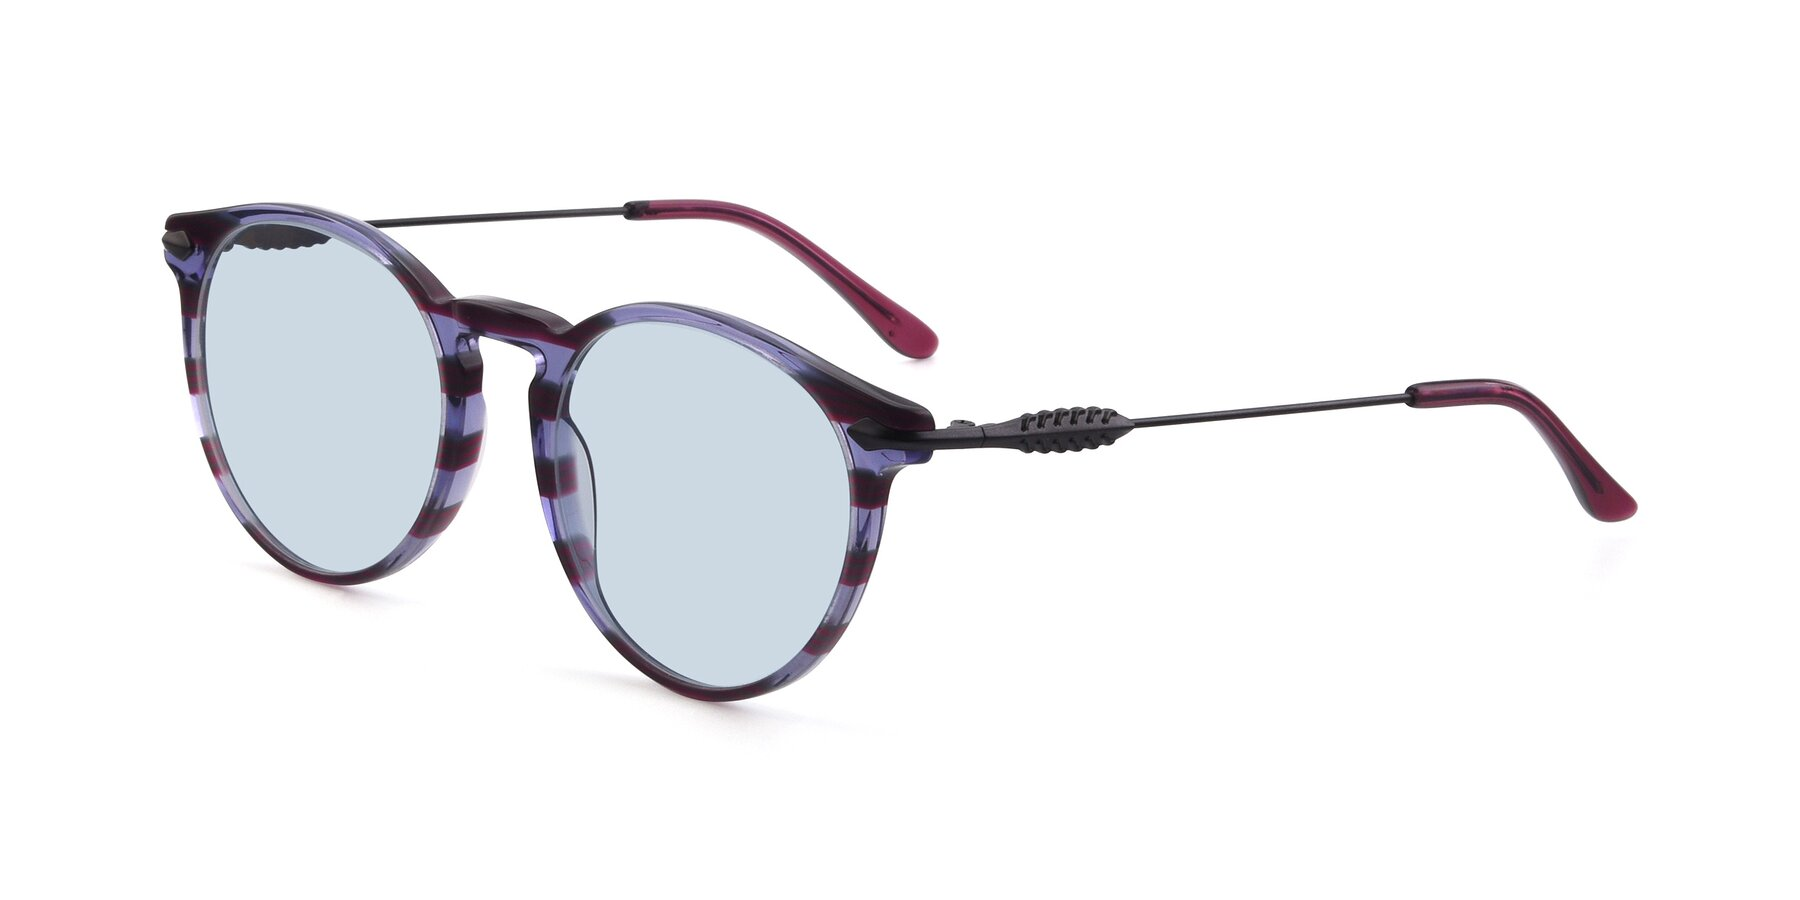 Angle of 17660 in Stripe Purple with Light Blue Tinted Lenses